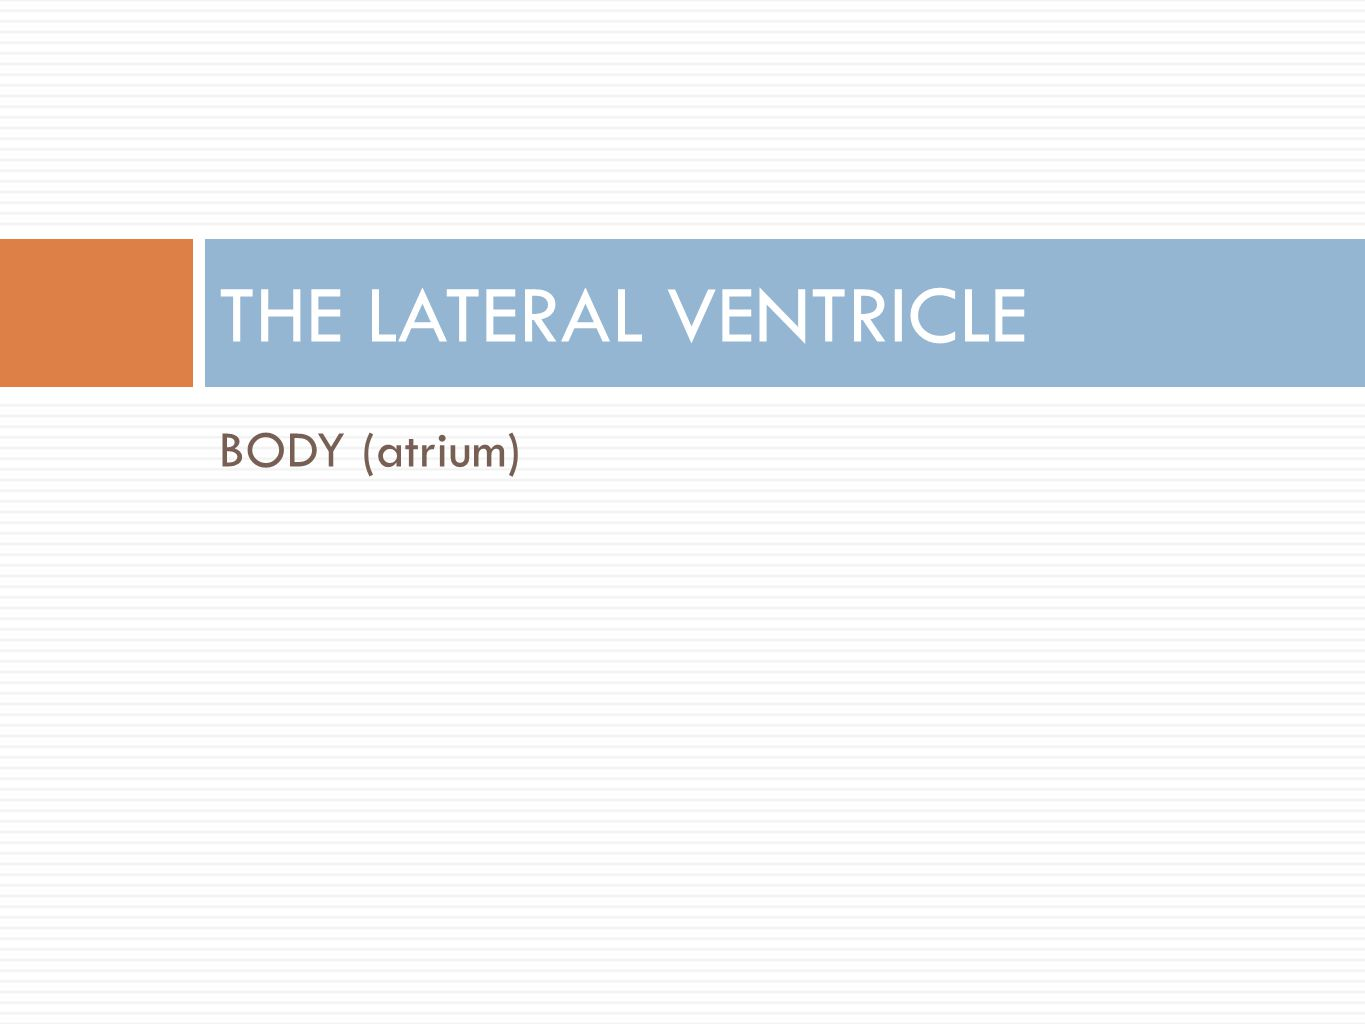 THE LATERAL VENTRICLE BODY (atrium)